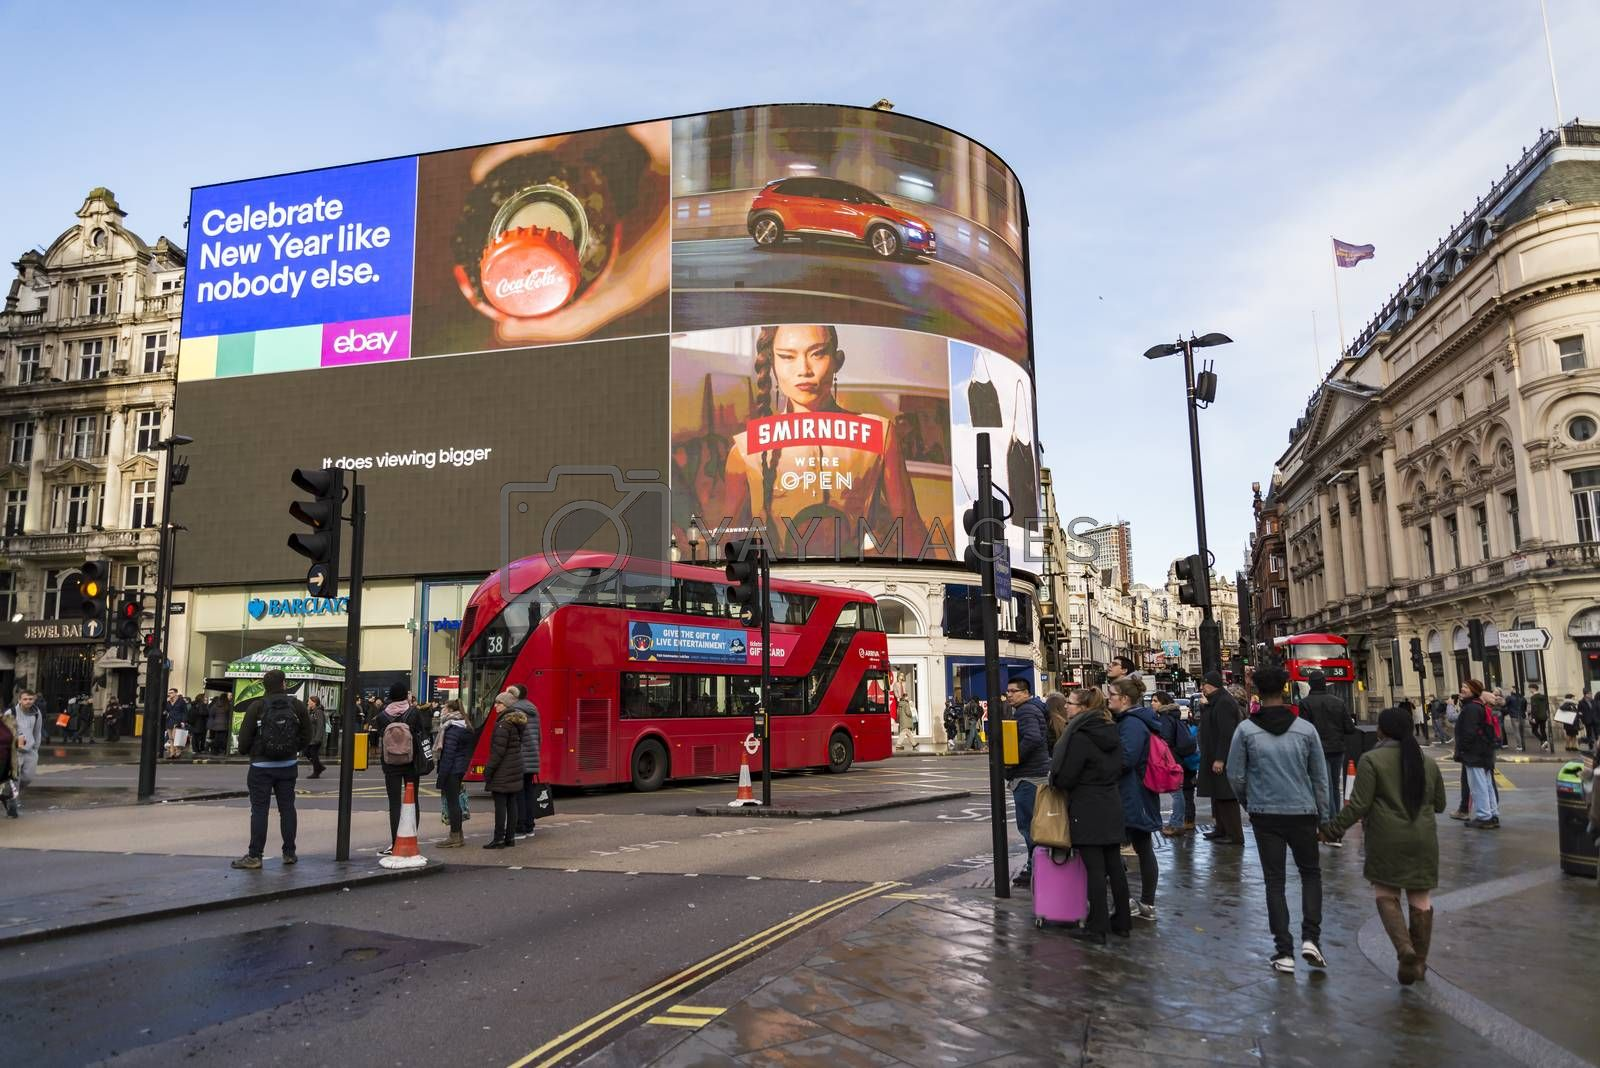 LONDON - DECEMBER 29: view of Piccadilly Circus with cabs , buses and crowds on December 29, 2017 in London UK. Famous advertisements have been here for at least 20 years and are considered symbols of famous square.